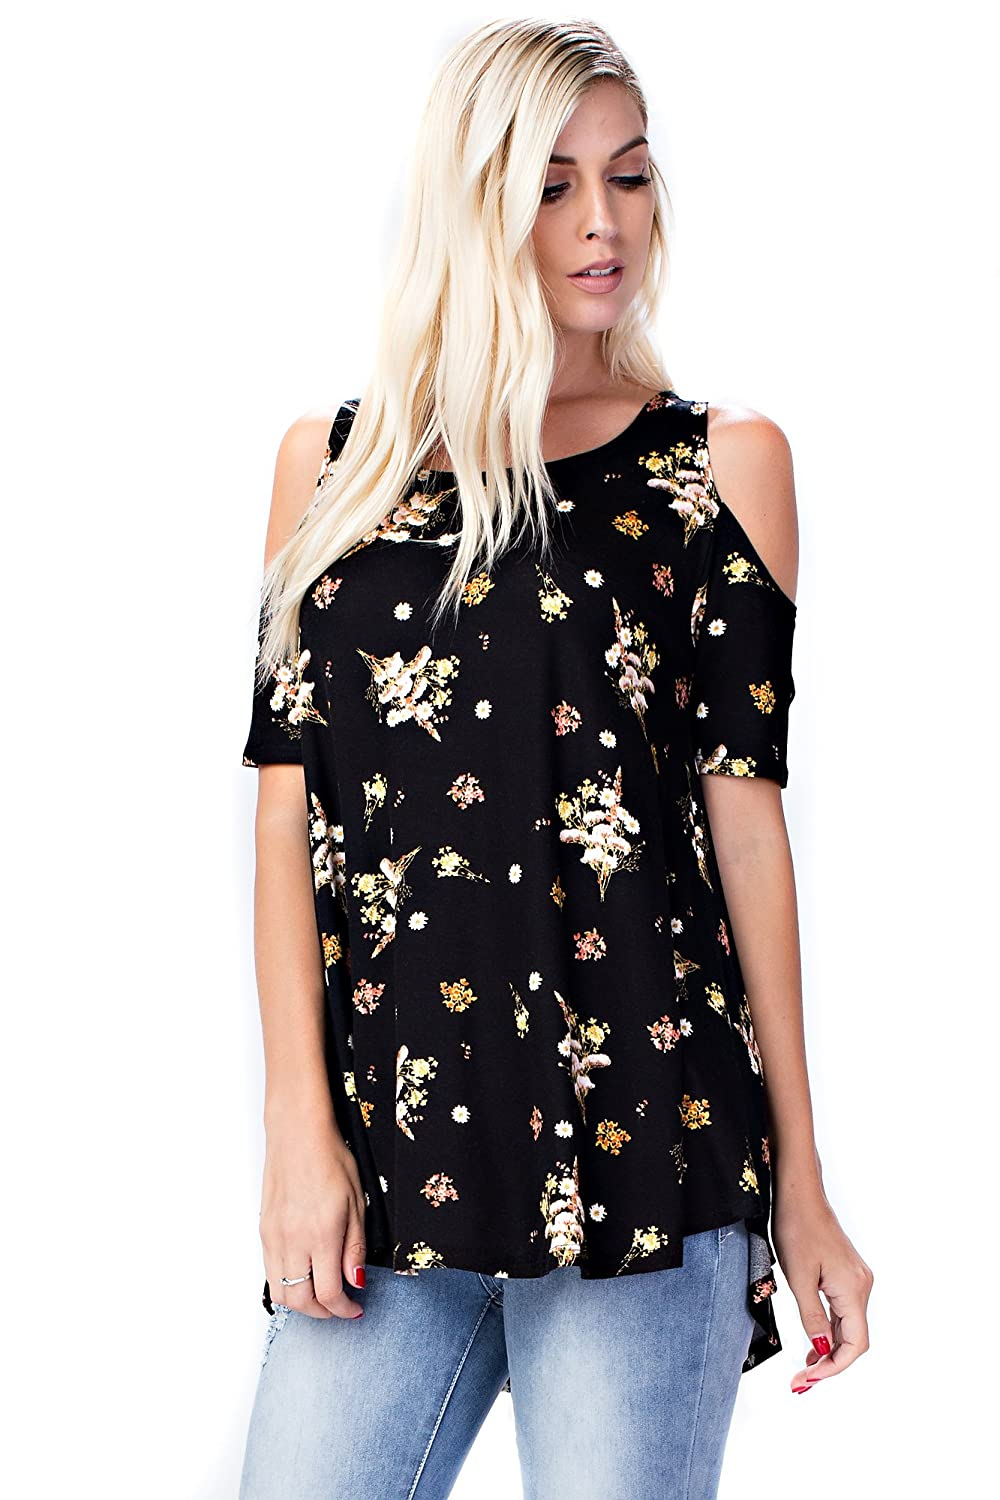 B3517 Black Yellow Floral Allora Betsy Red Couture Women's Cold Shoulder Soft Knit Tunic Top (S3X)